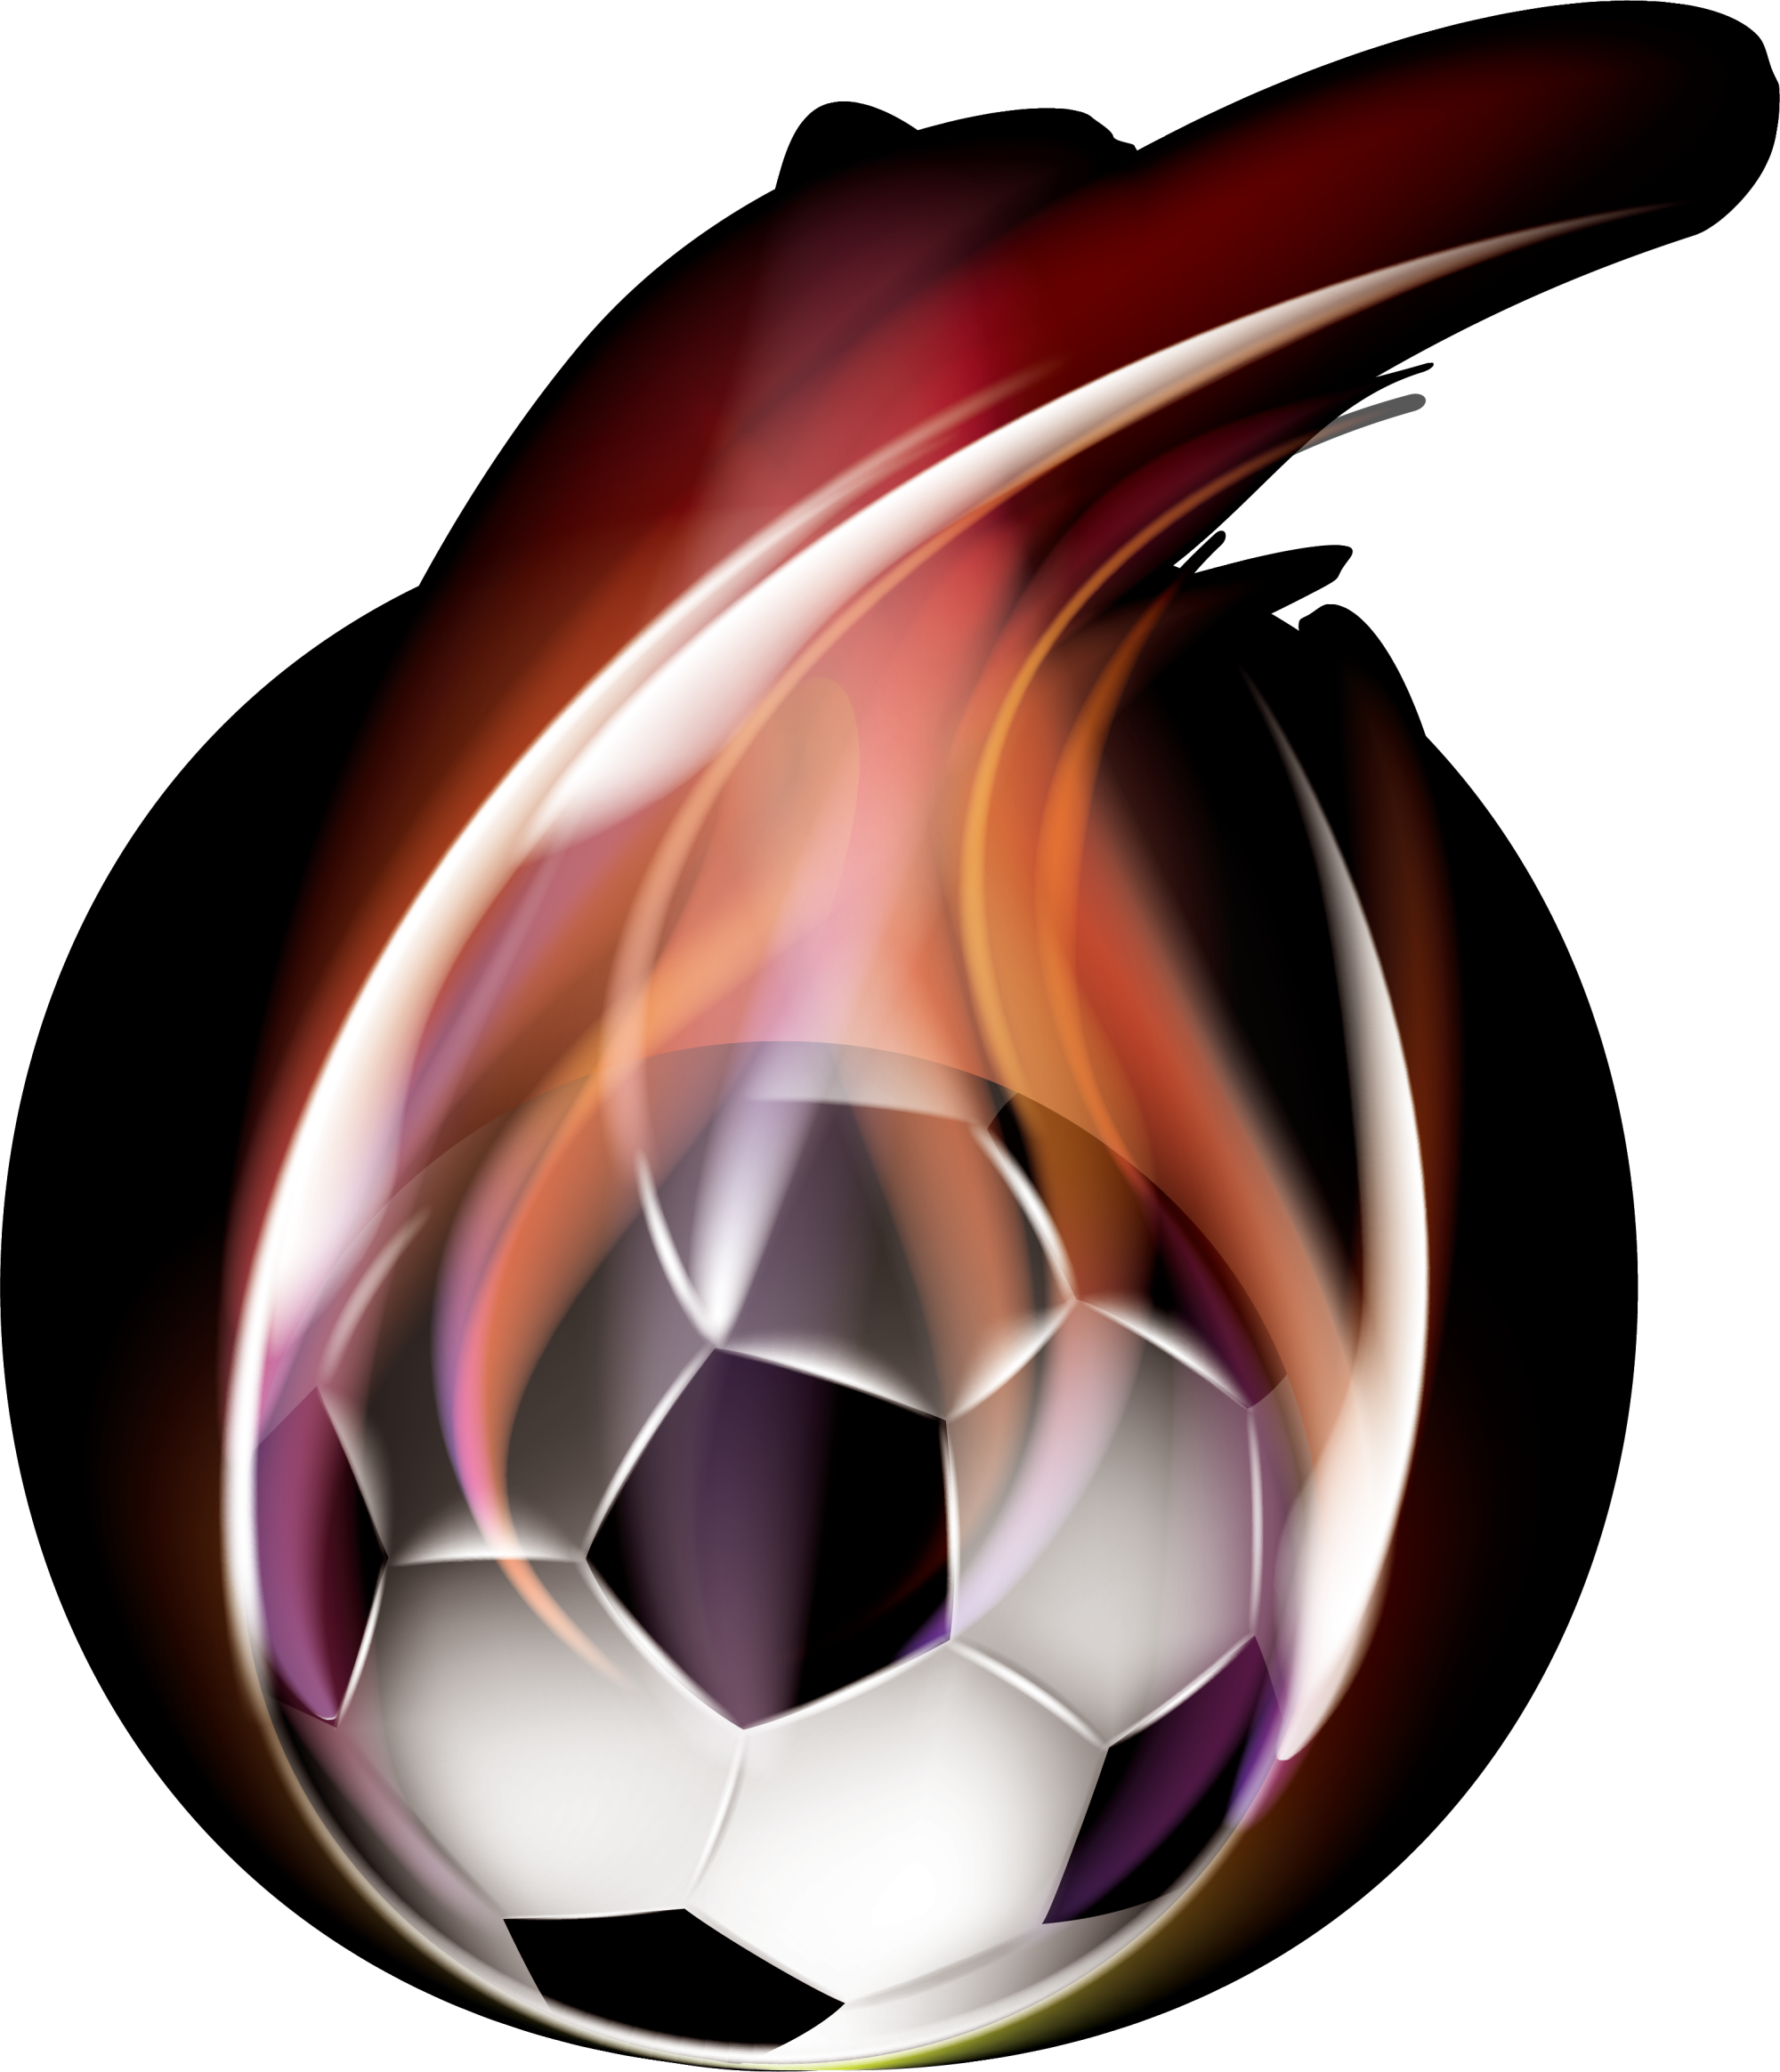 Free purple football clipart png clipart royalty free stock 2014 FIFA World Cup Football Sport - Red flame soccer 2000*2328 ... clipart royalty free stock